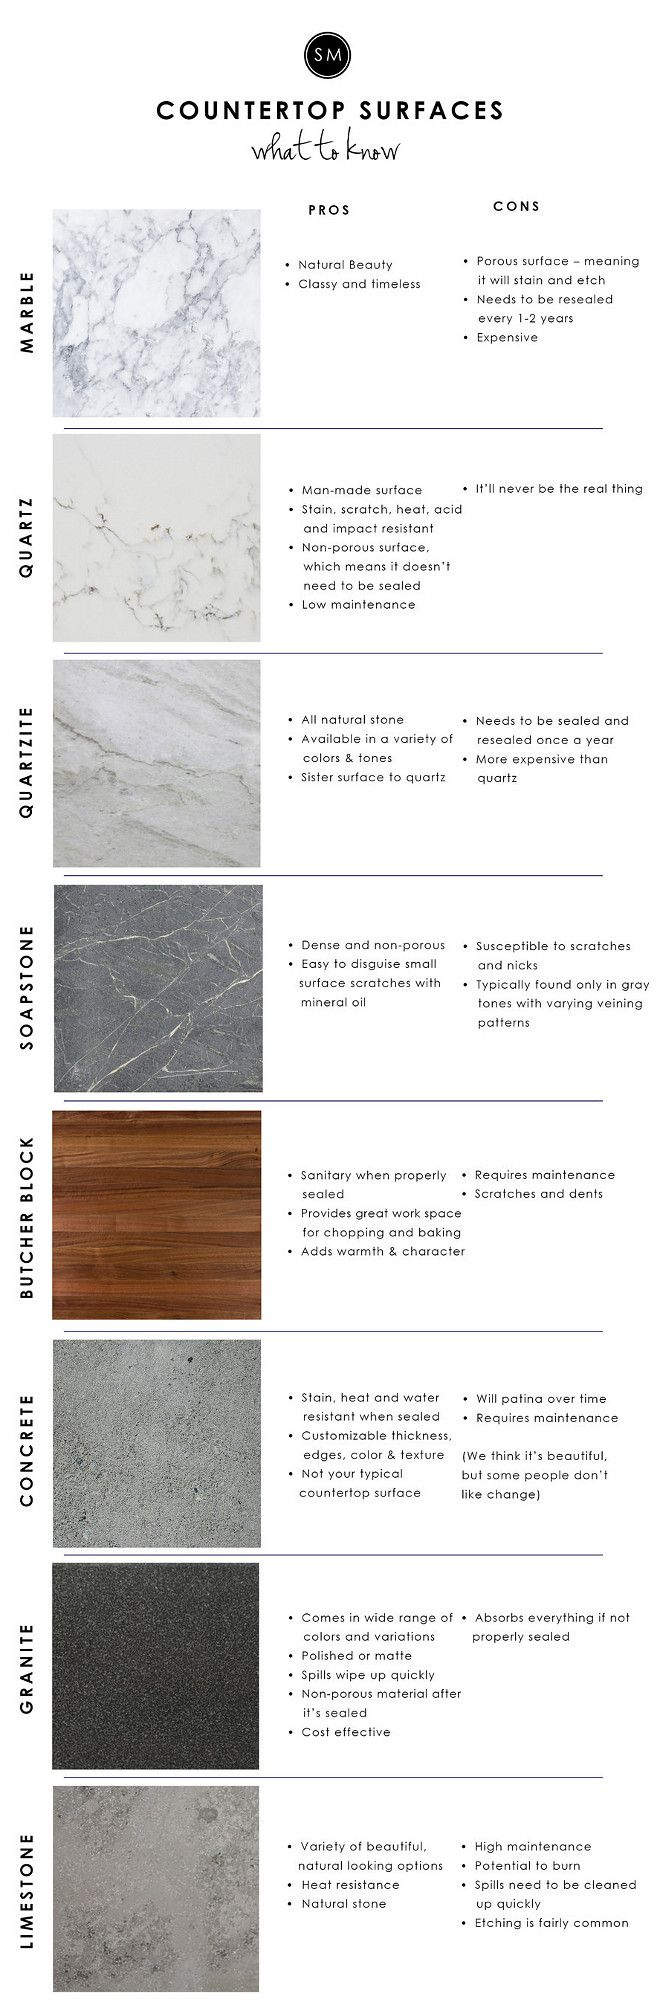 Countertop Types What To Know About Countertops Marble